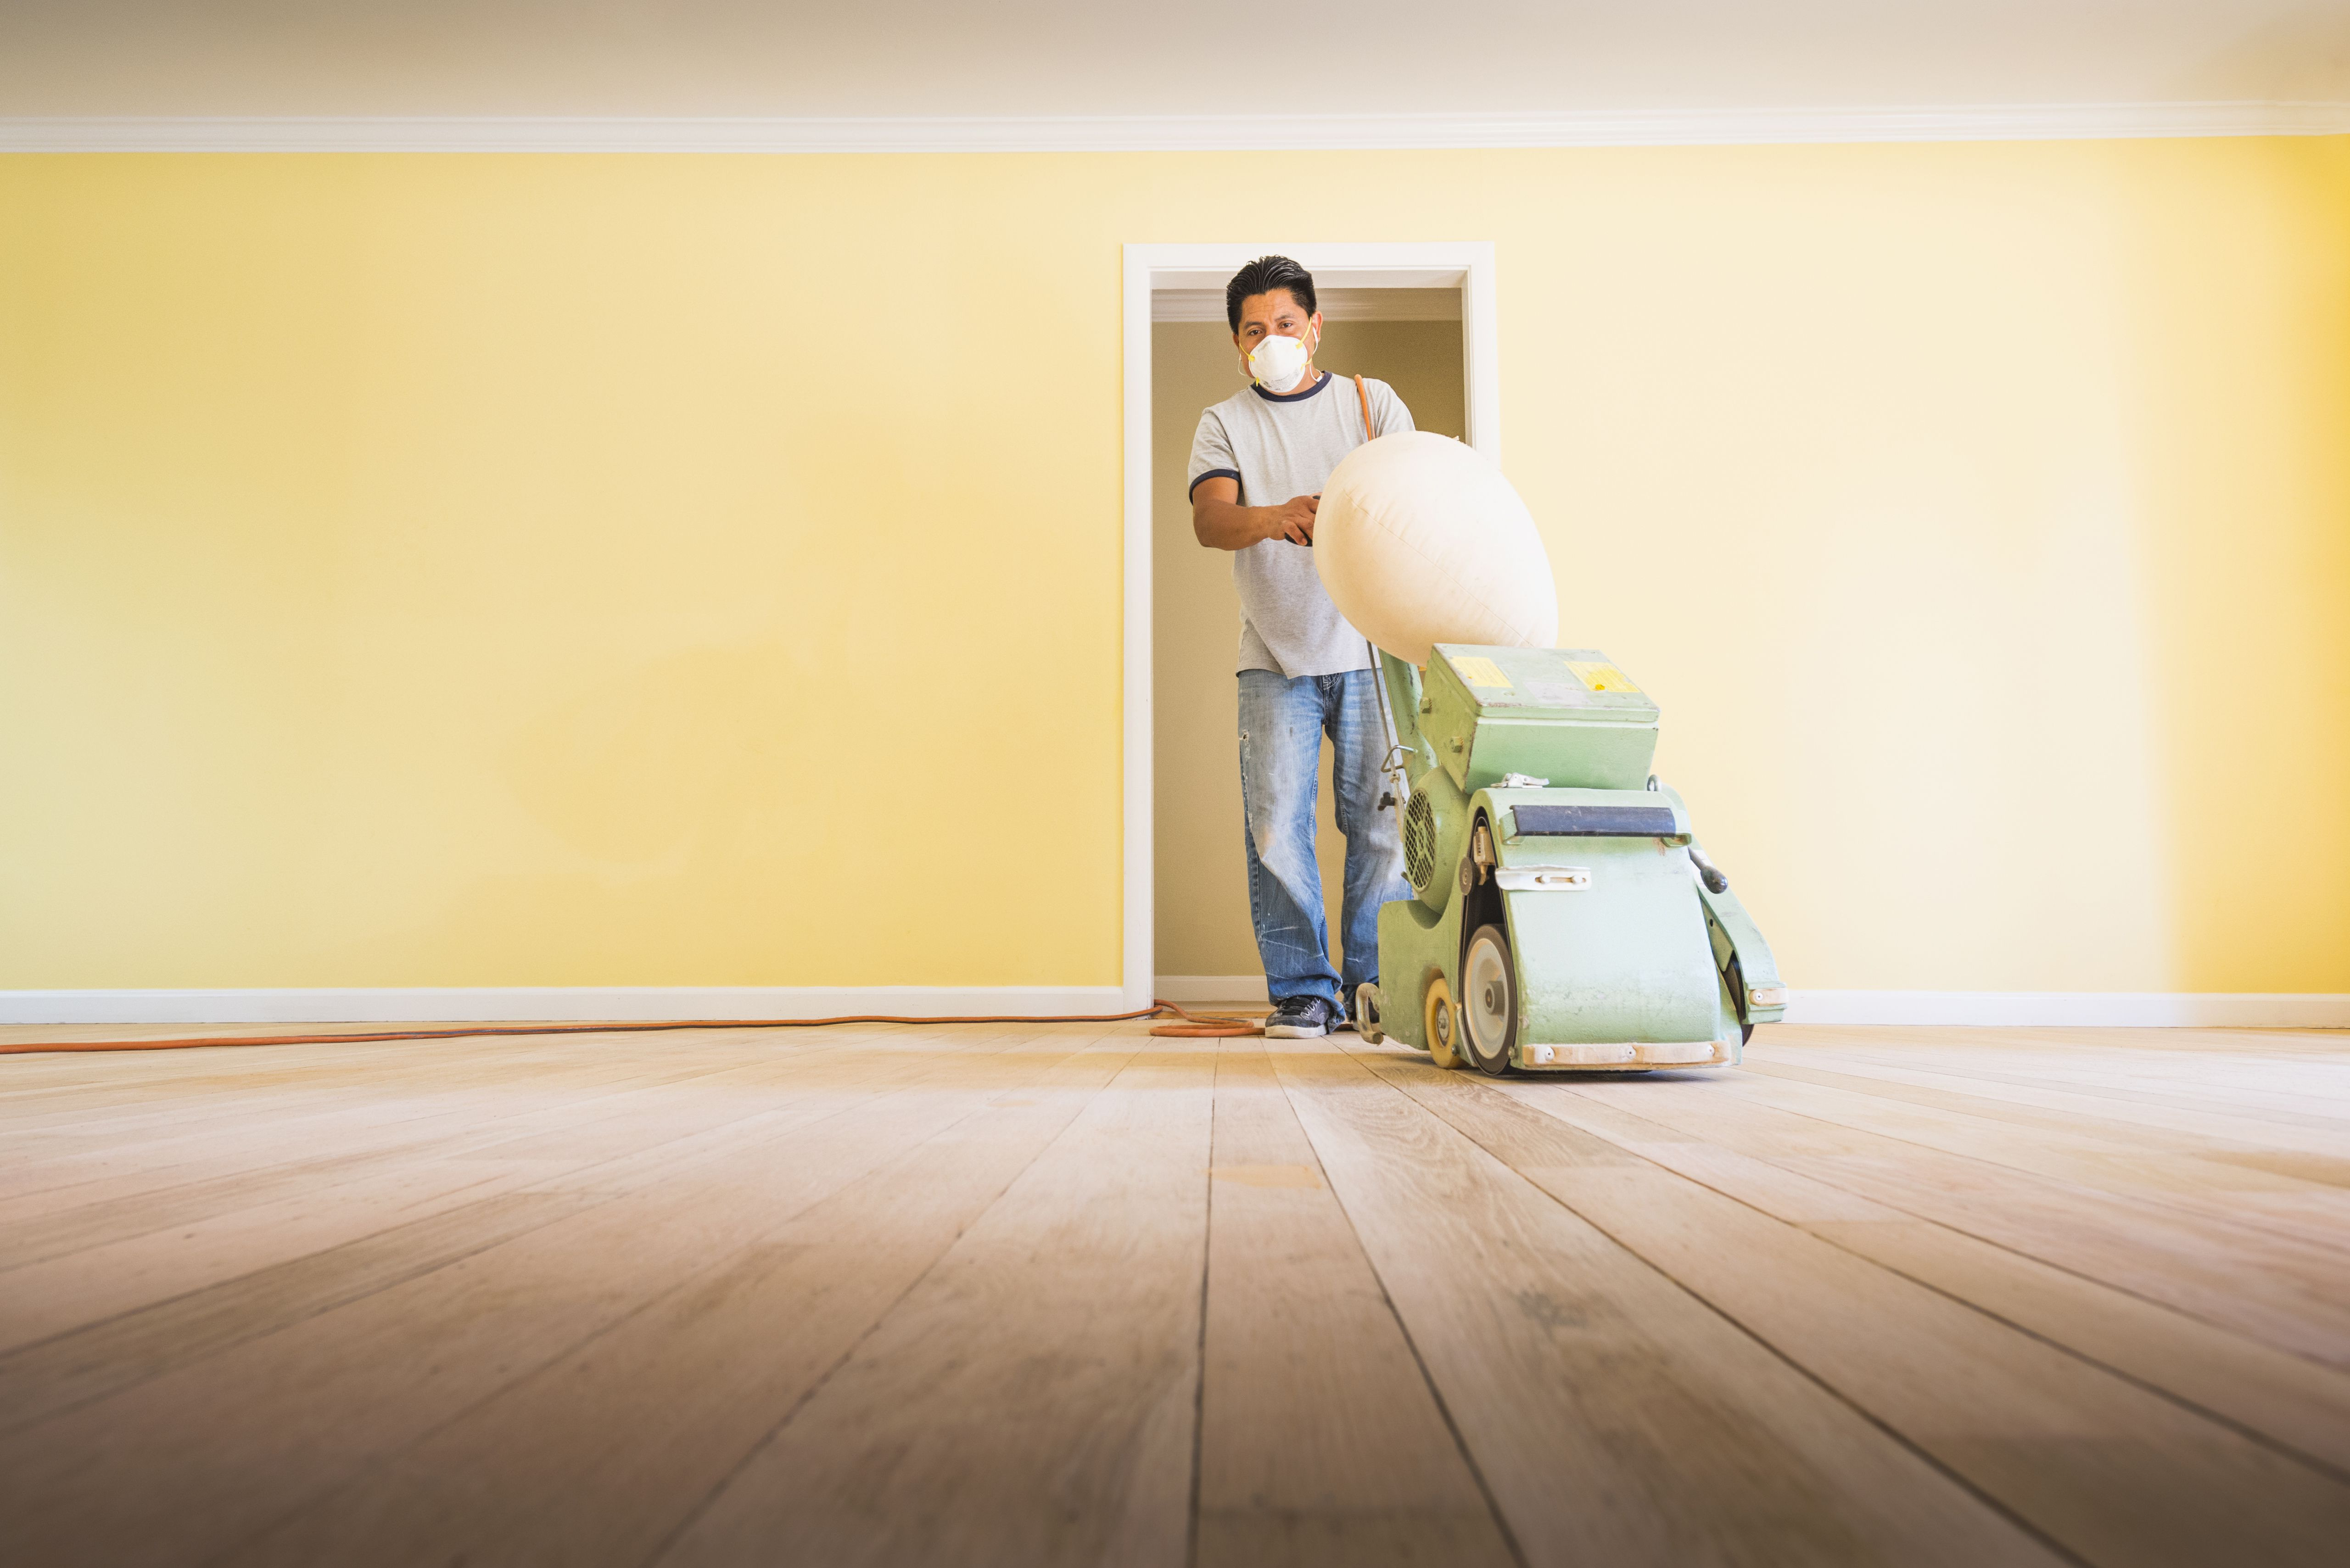 sanding hardwood floors before and after of should you paint walls or refinish floors first within floorsandingafterpainting 5a8f08dfae9ab80037d9d878